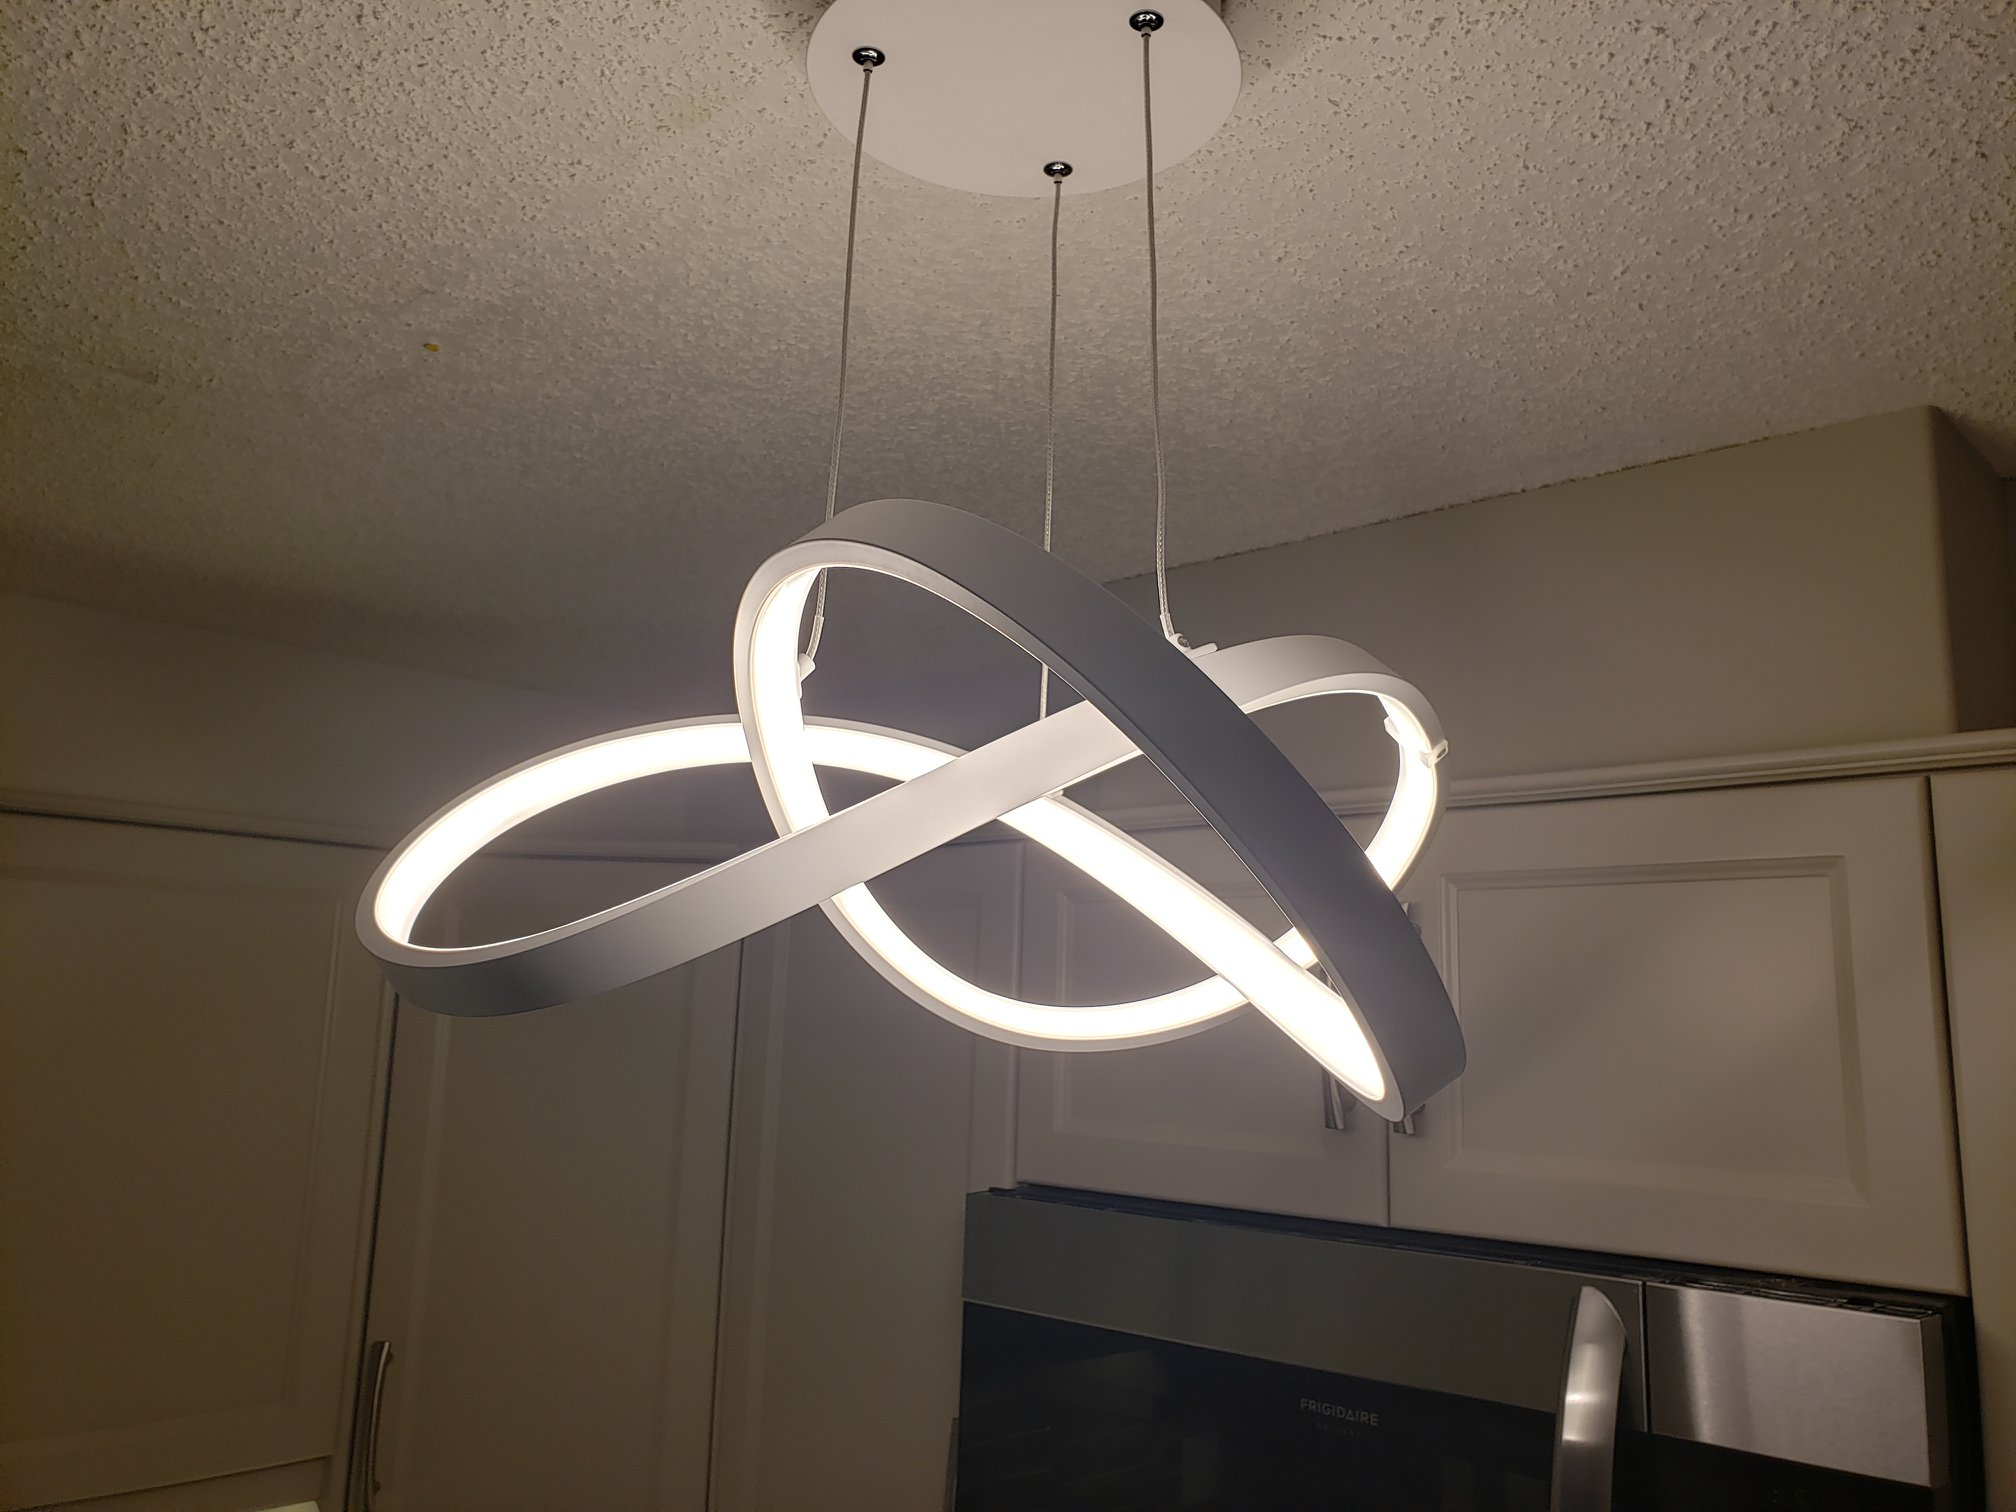 The kitchen used to have tacky track lighting. She chose this beautiful LED fixture to replace it. Along with the undercabinet lighting, the kitchen is bright and well lit.